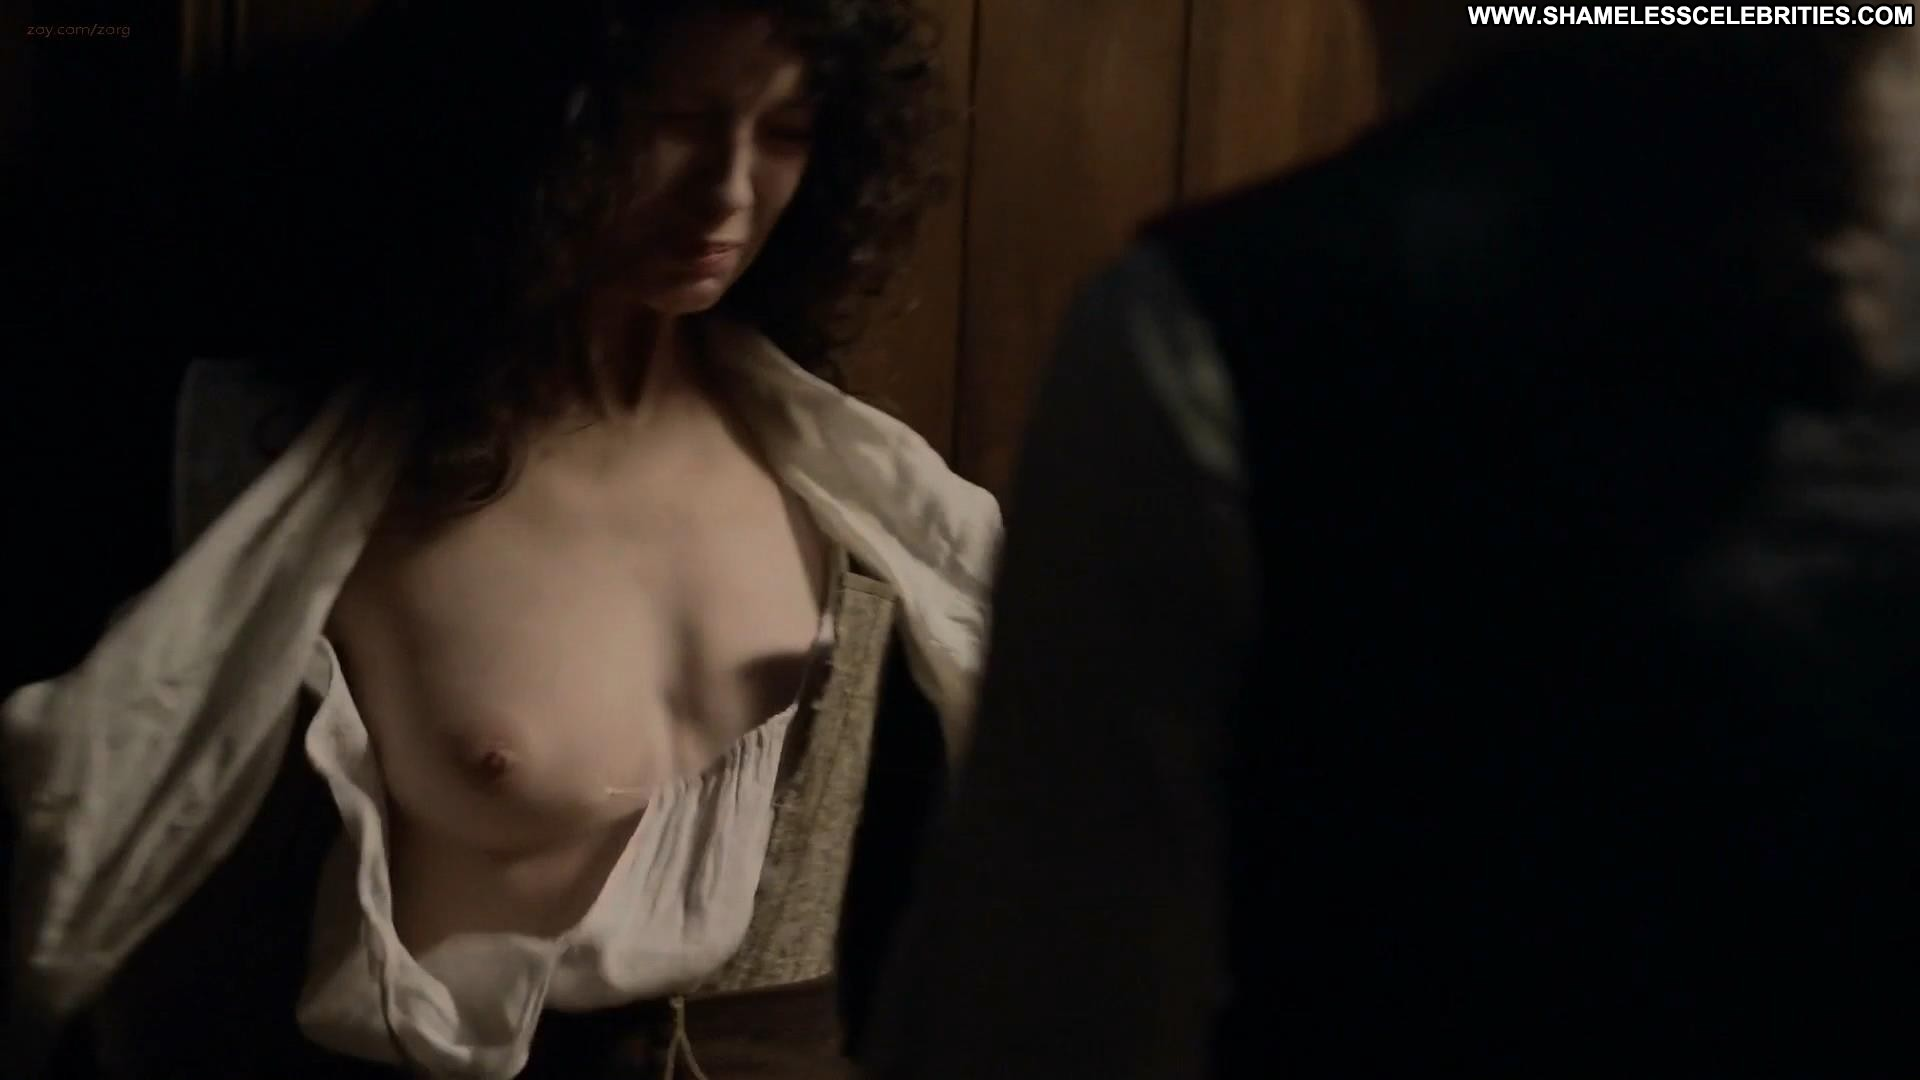 Caitriona balfe nude sex in outlander scandalplanetcom 5